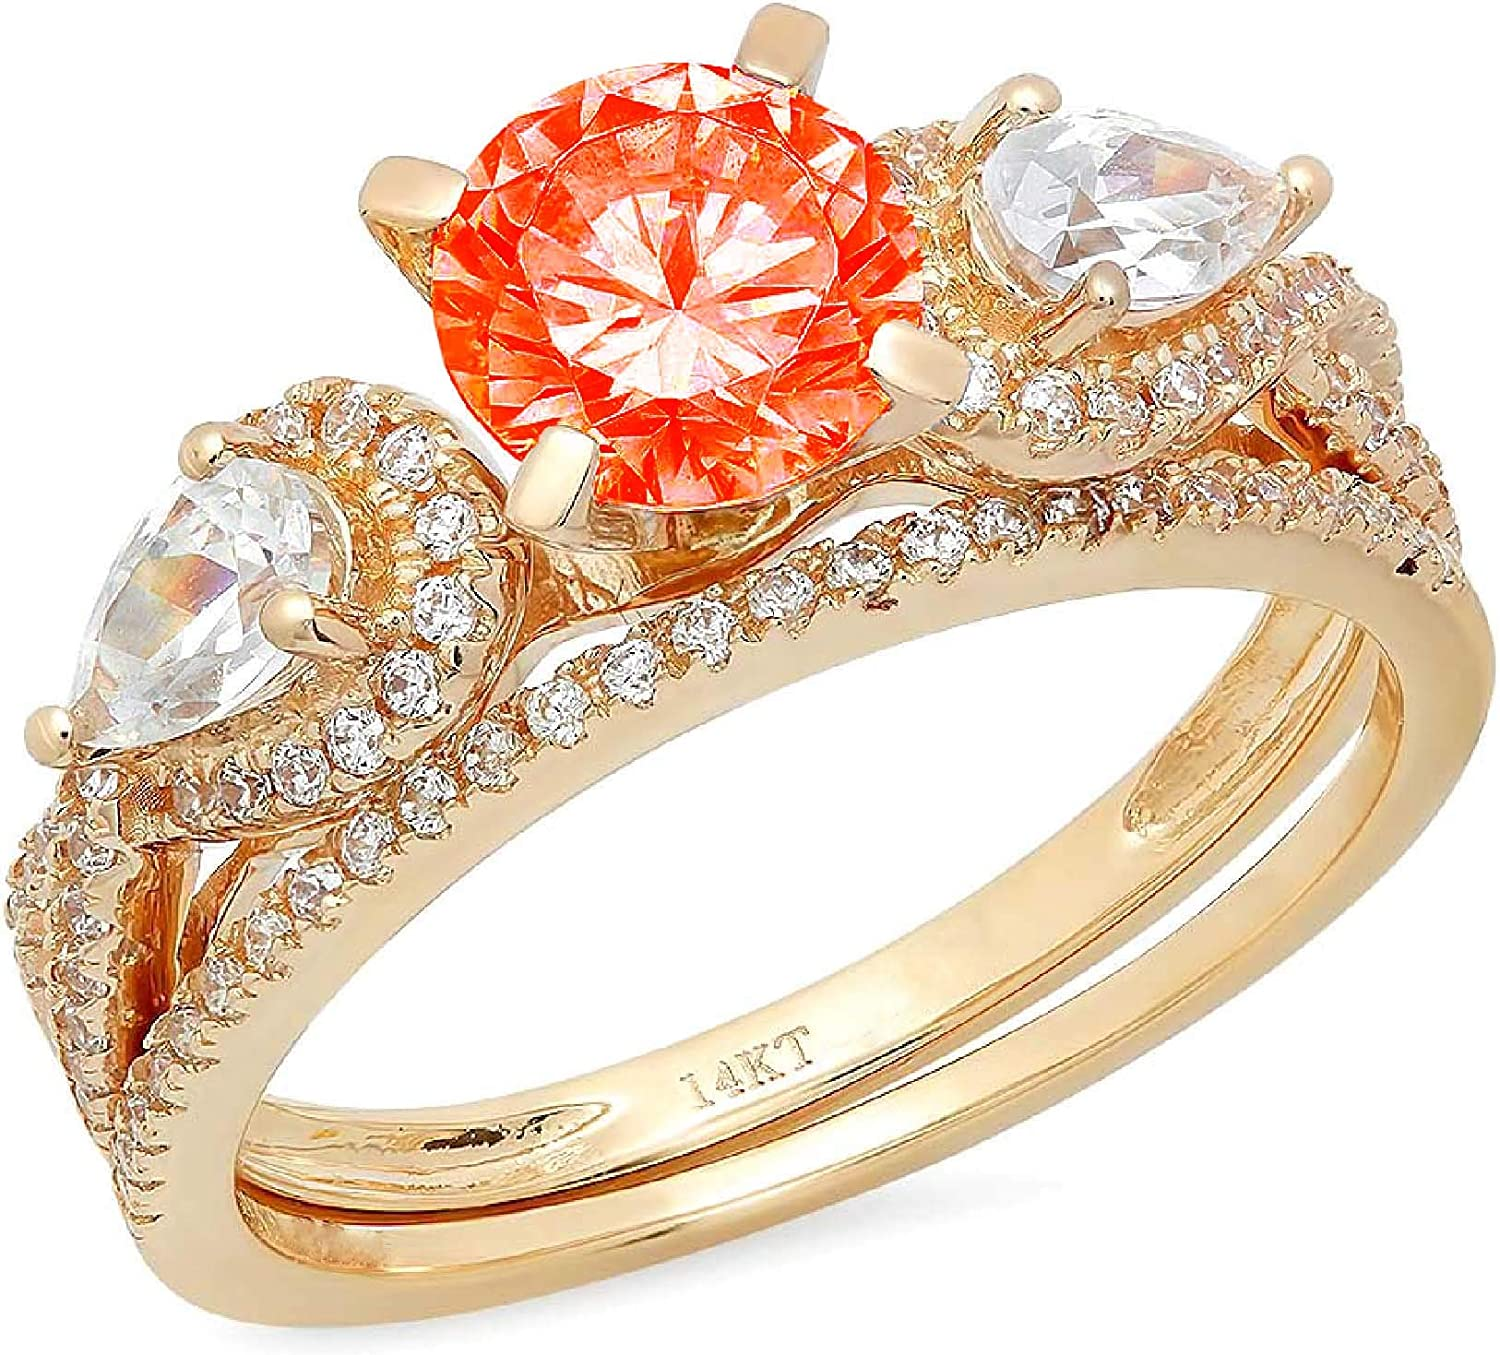 1.97ct Round Pear Cut Solitaire 3 stone With Accent Red Simulated Diamond Designer Statement Classic Ring Band Set Real Solid 14k Yellow Gold